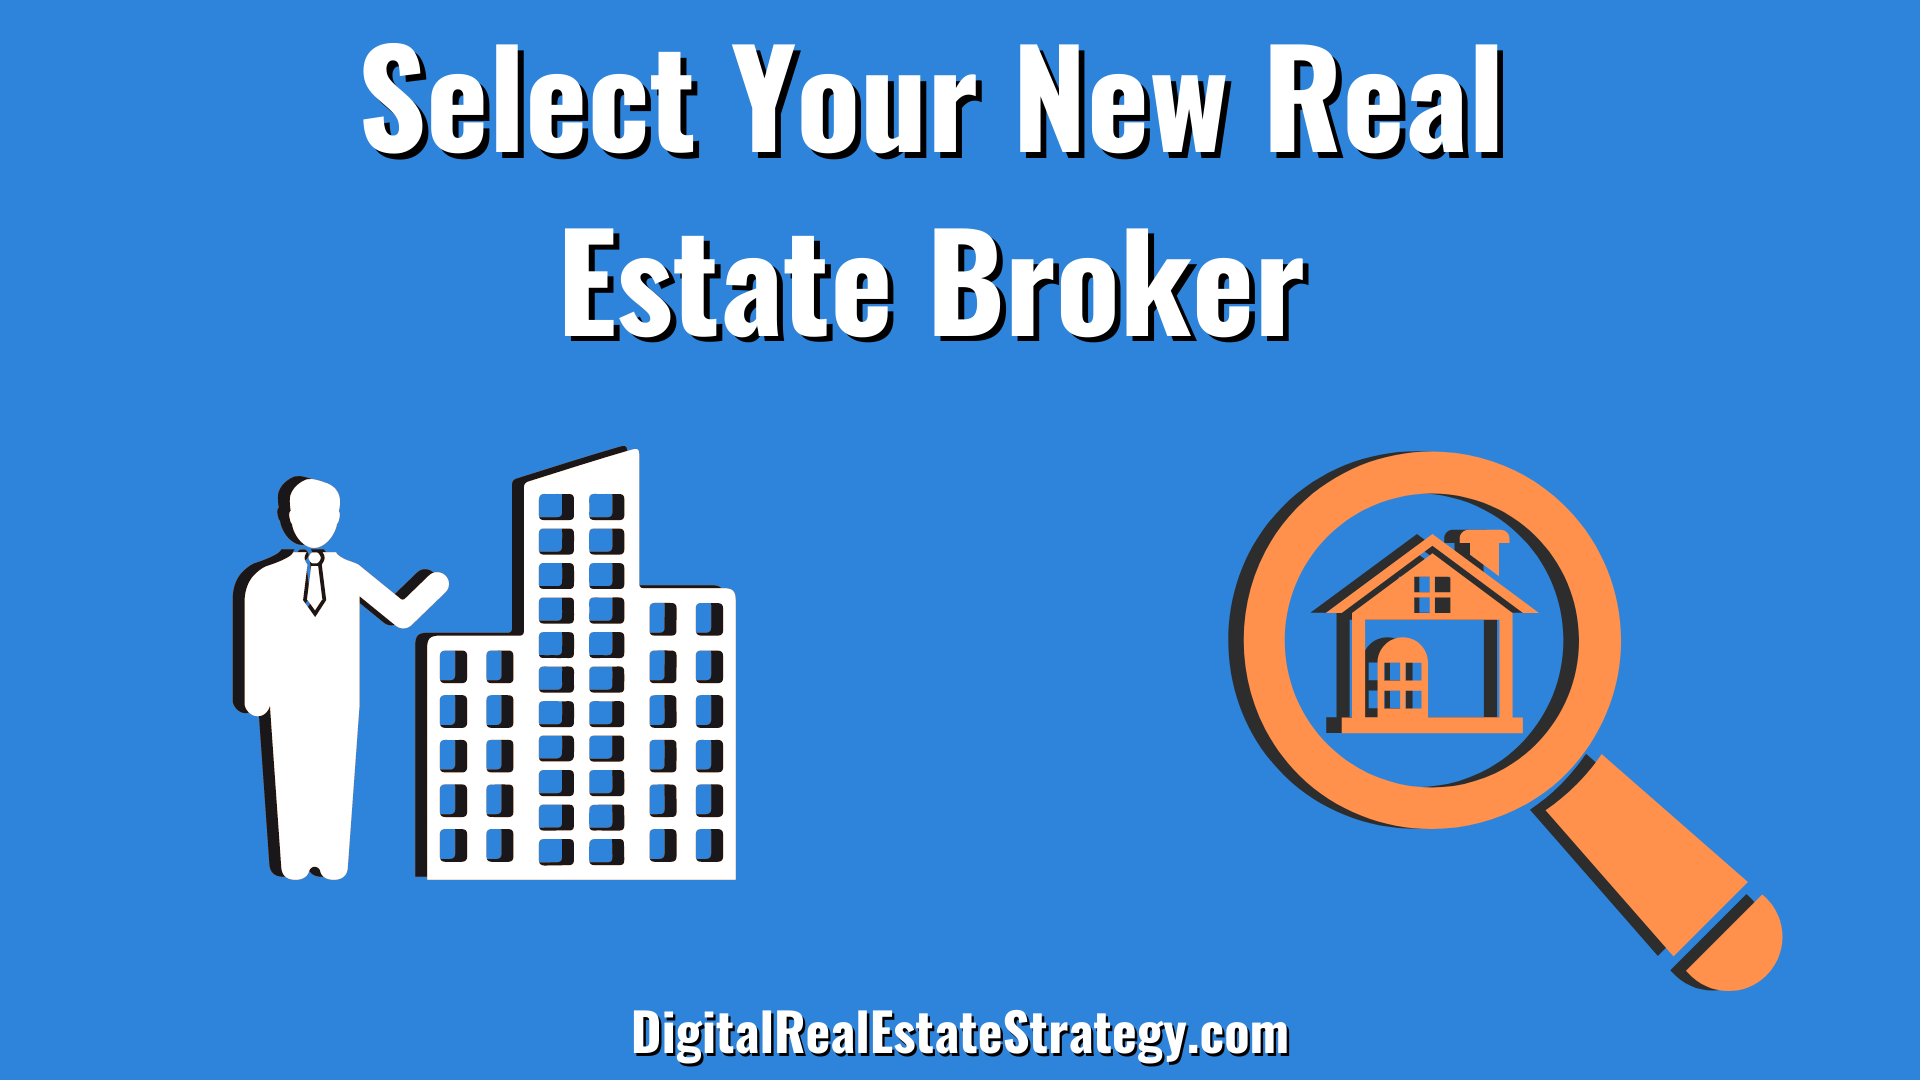 Select Your New Real Estate Broker - Real Estate License Requirements - Real Estate School - Jerome Lewis - Philadelphia - eXp Realty